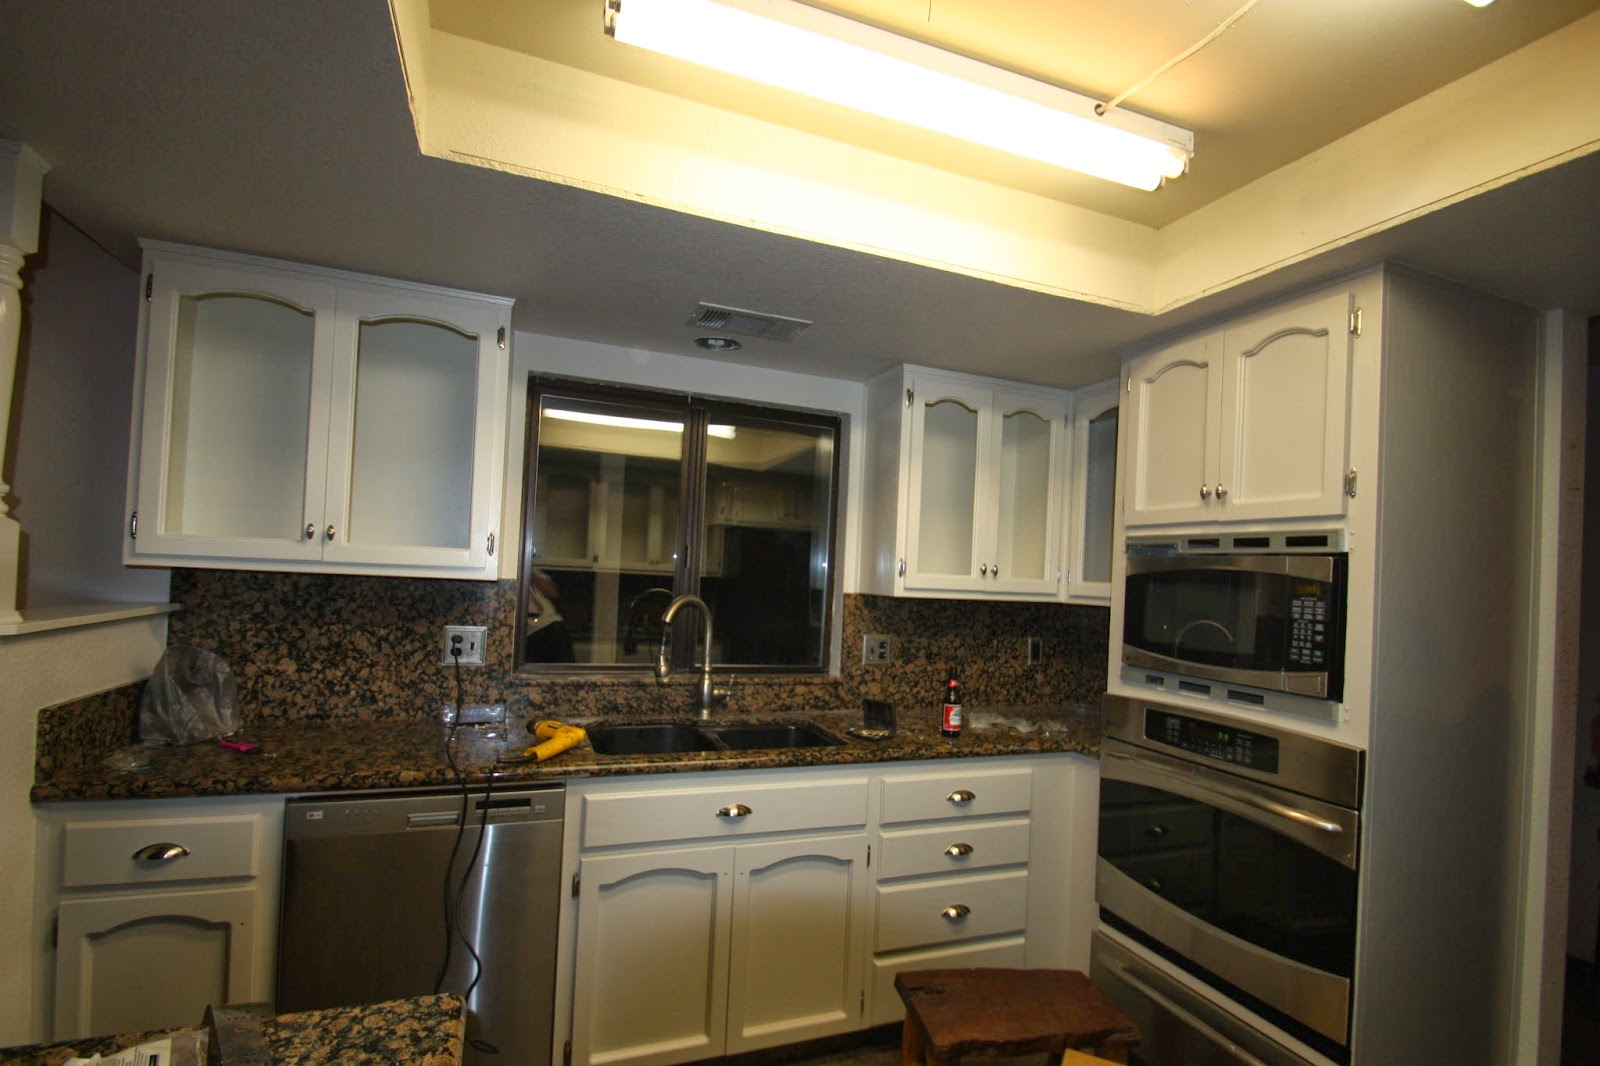 Tona Painting Job Pictures Update On 1980 S Kitchen Cabinets